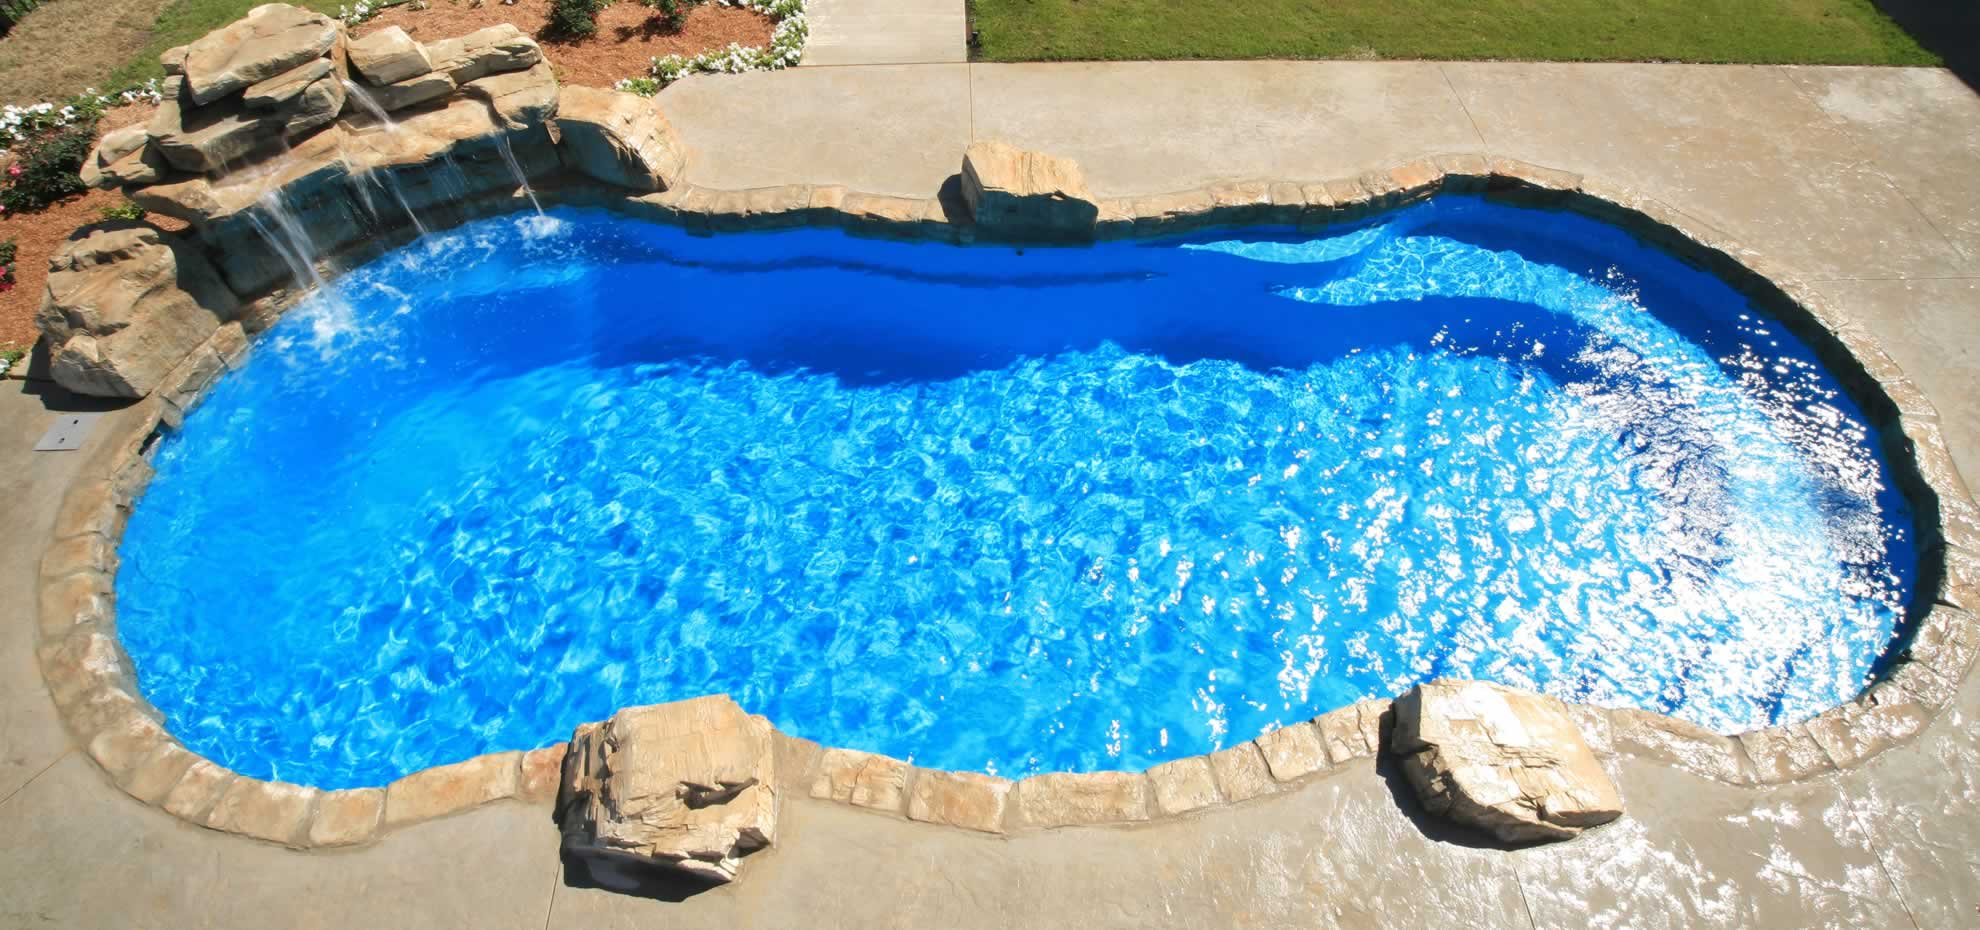 Fiberglass pool with coping and water feature by Leisure Pools